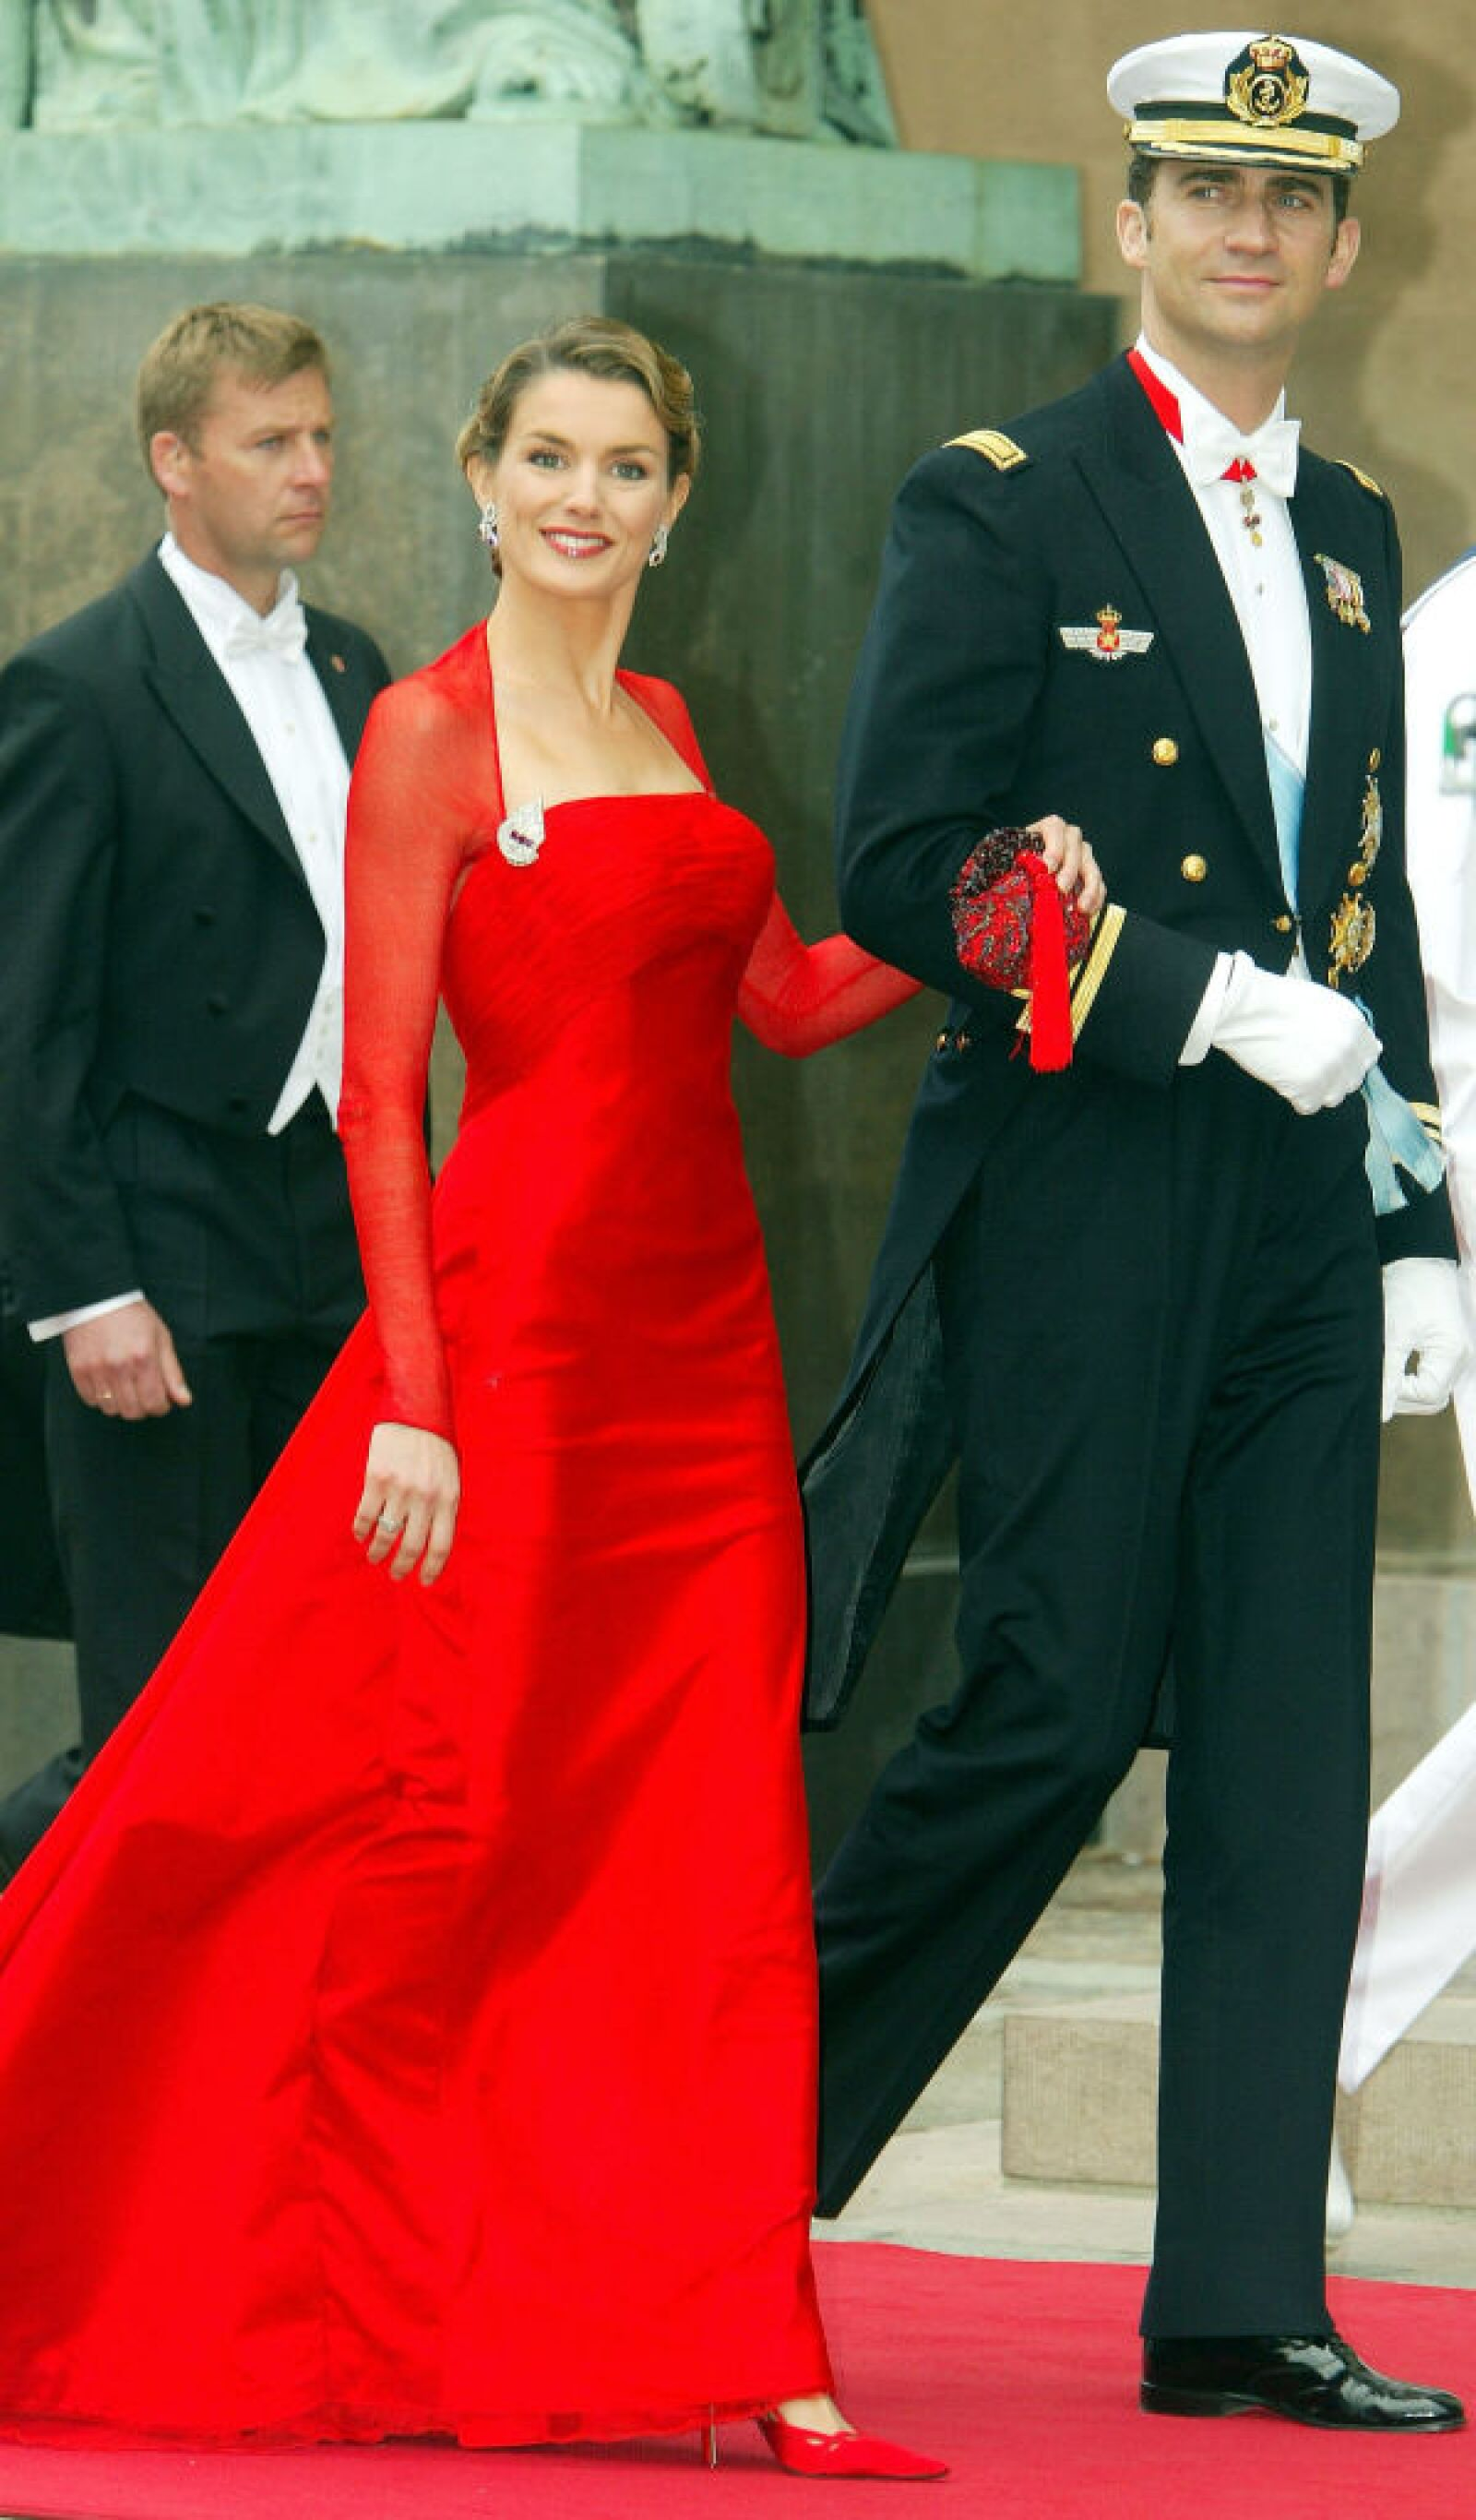 DK Wedding Of Danish Crown Prince Frederik and Mary Donaldson